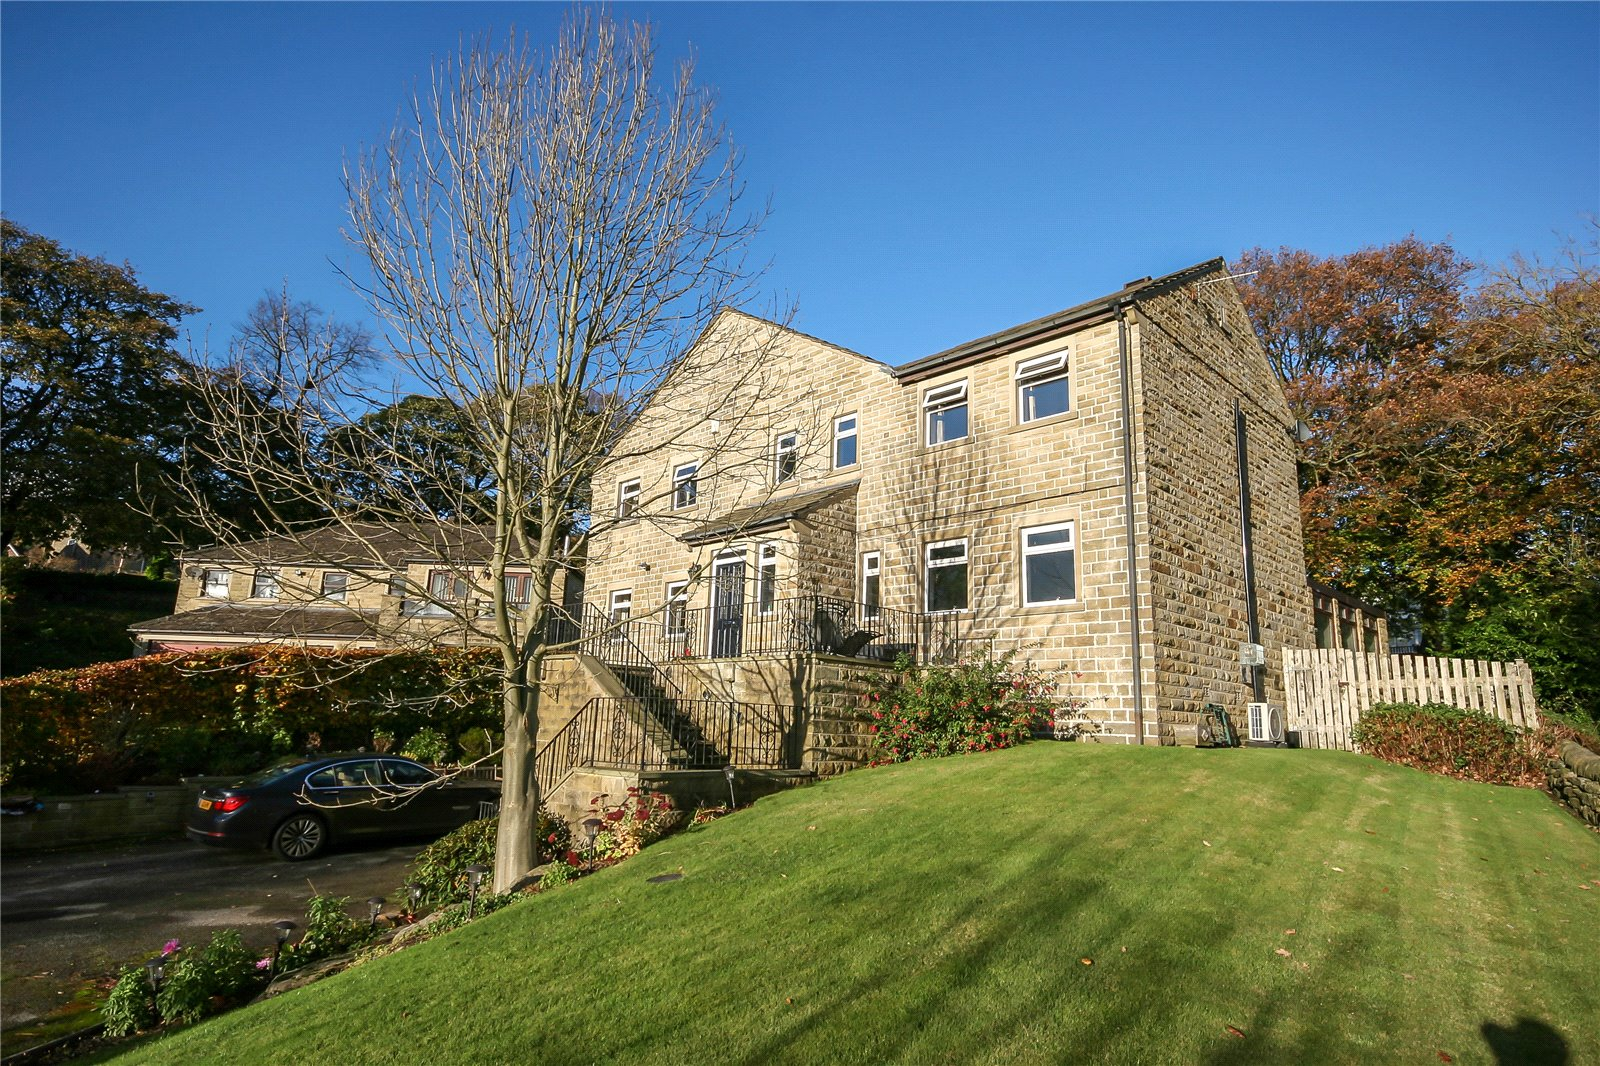 4 Bedrooms Detached House for sale in Upper Ellistones Court, Greetland, HALIFAX, West Yorkshire, HX4